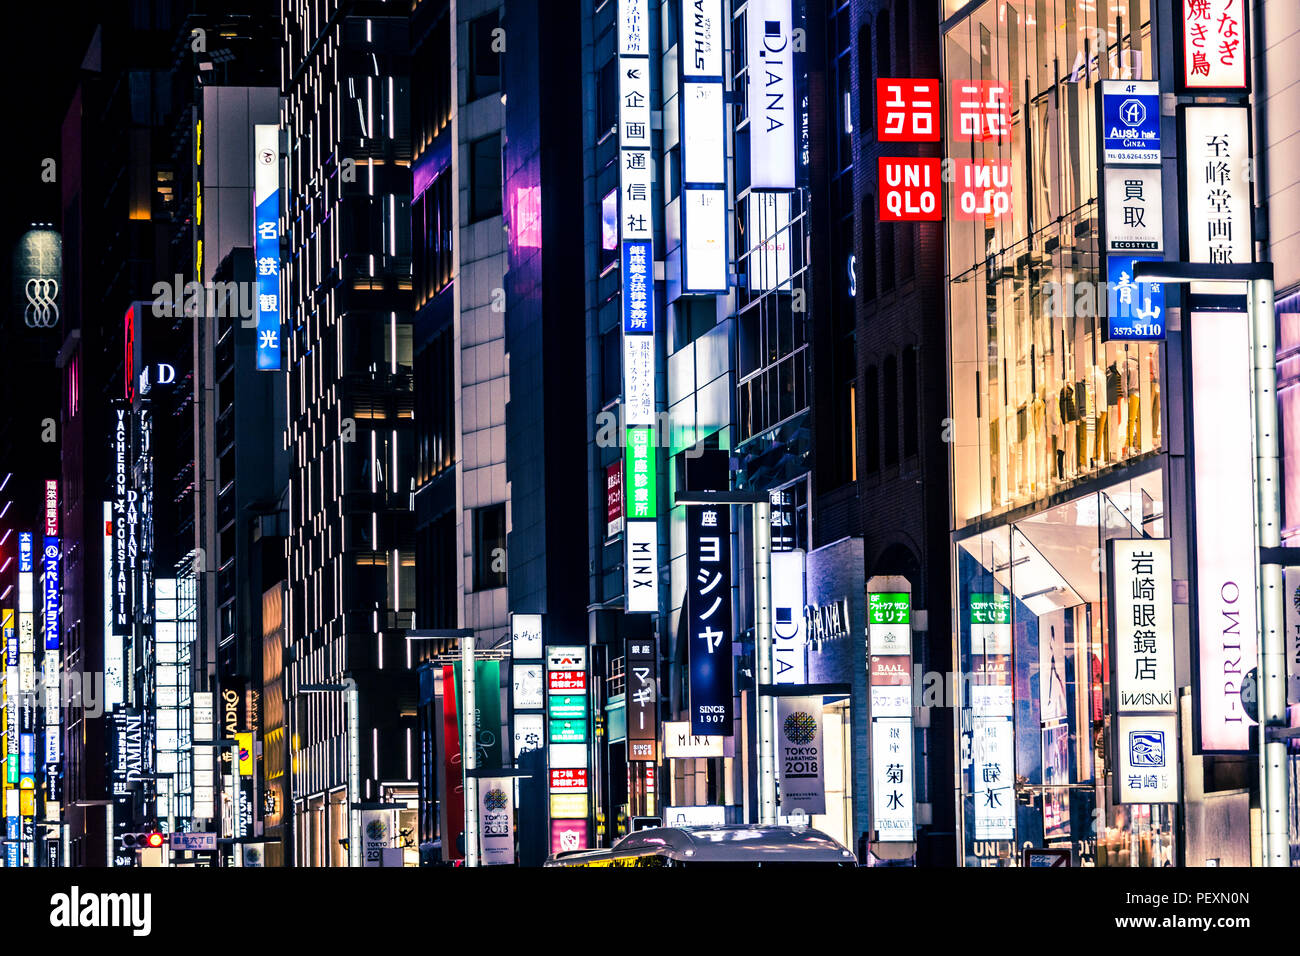 Neon lights in Ginza district, Tokyo, Japan - Stock Image